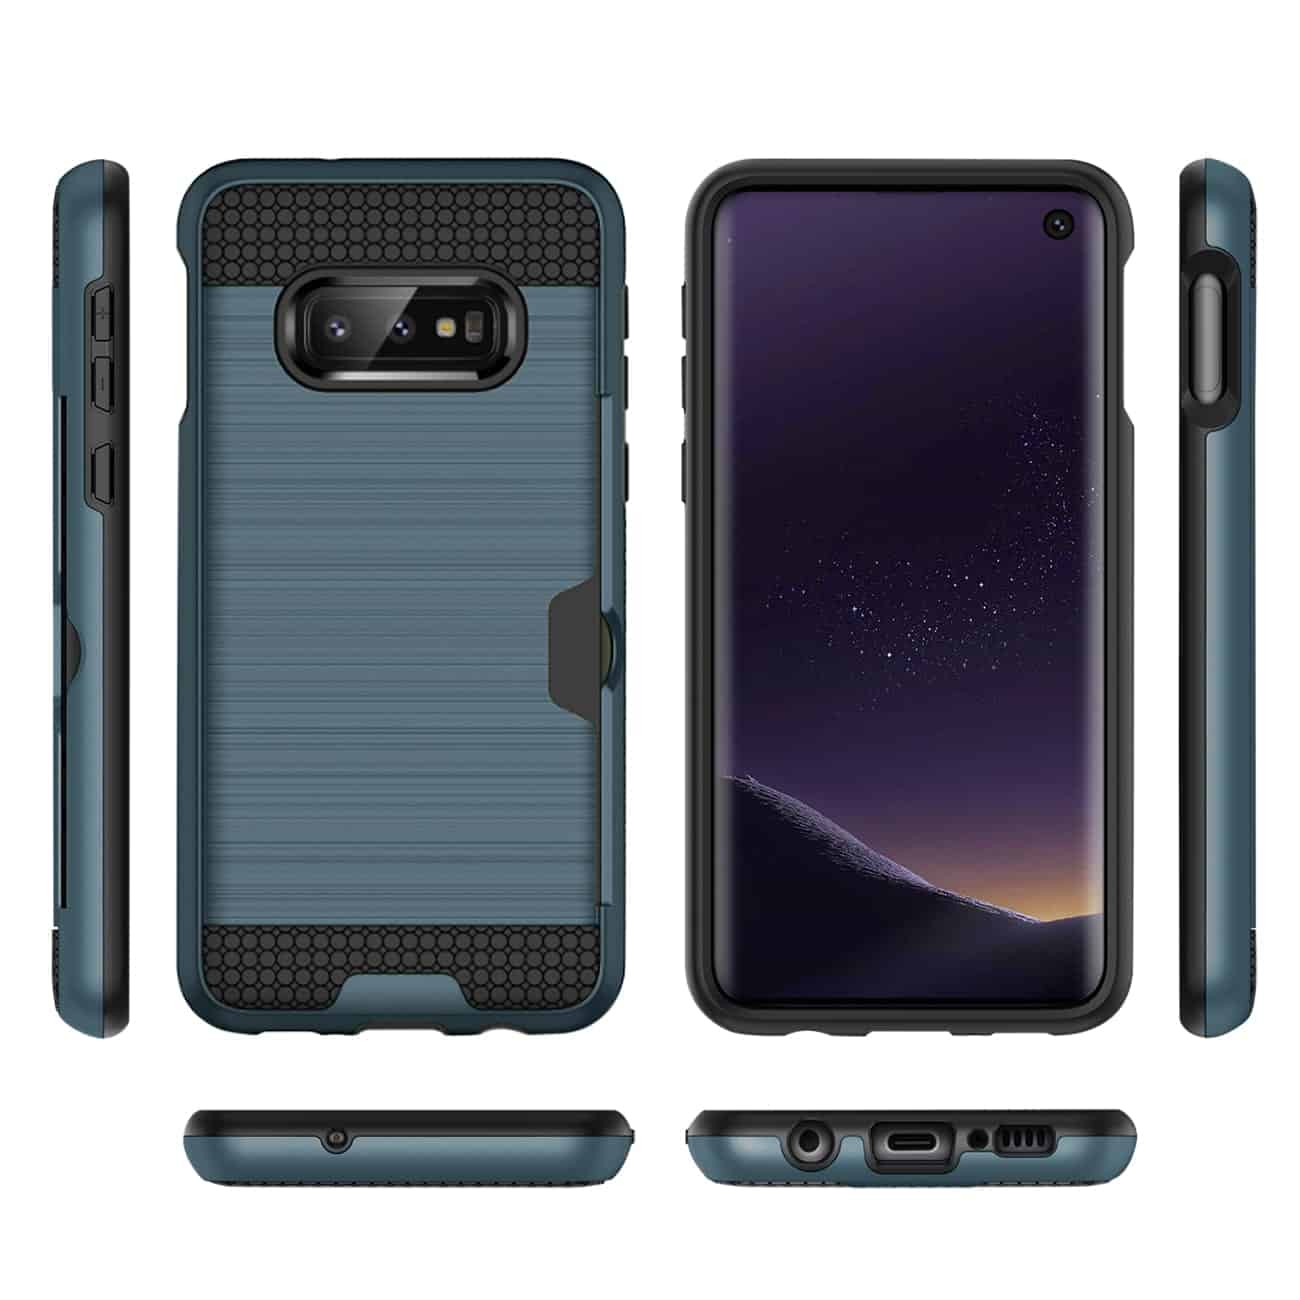 SAMSUNG GALAXY S10 Lite(S10e) Slim Armor Hybrid Case With Card Holder In Navy